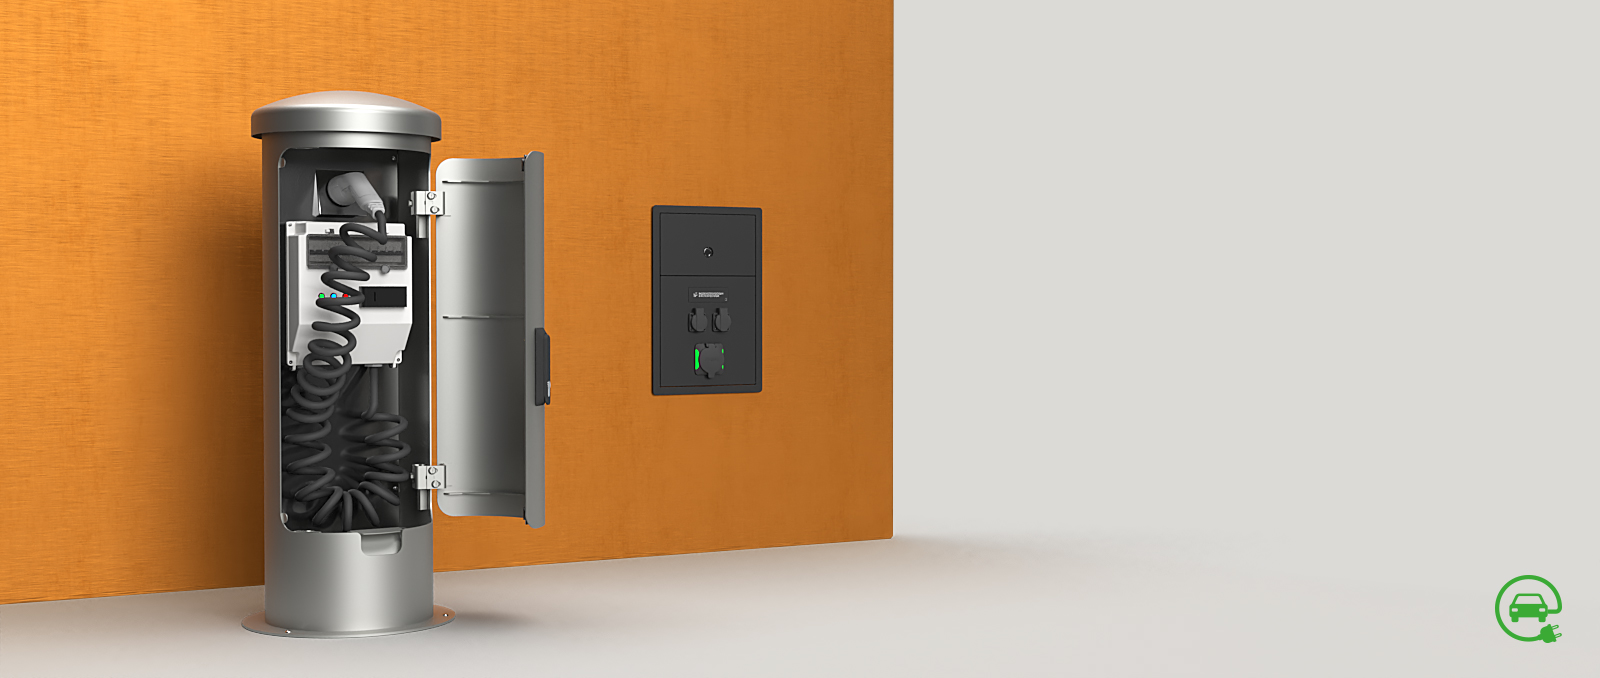 E-Mobility-Banner-2-with-charging station-and-wall charging station-1600×678